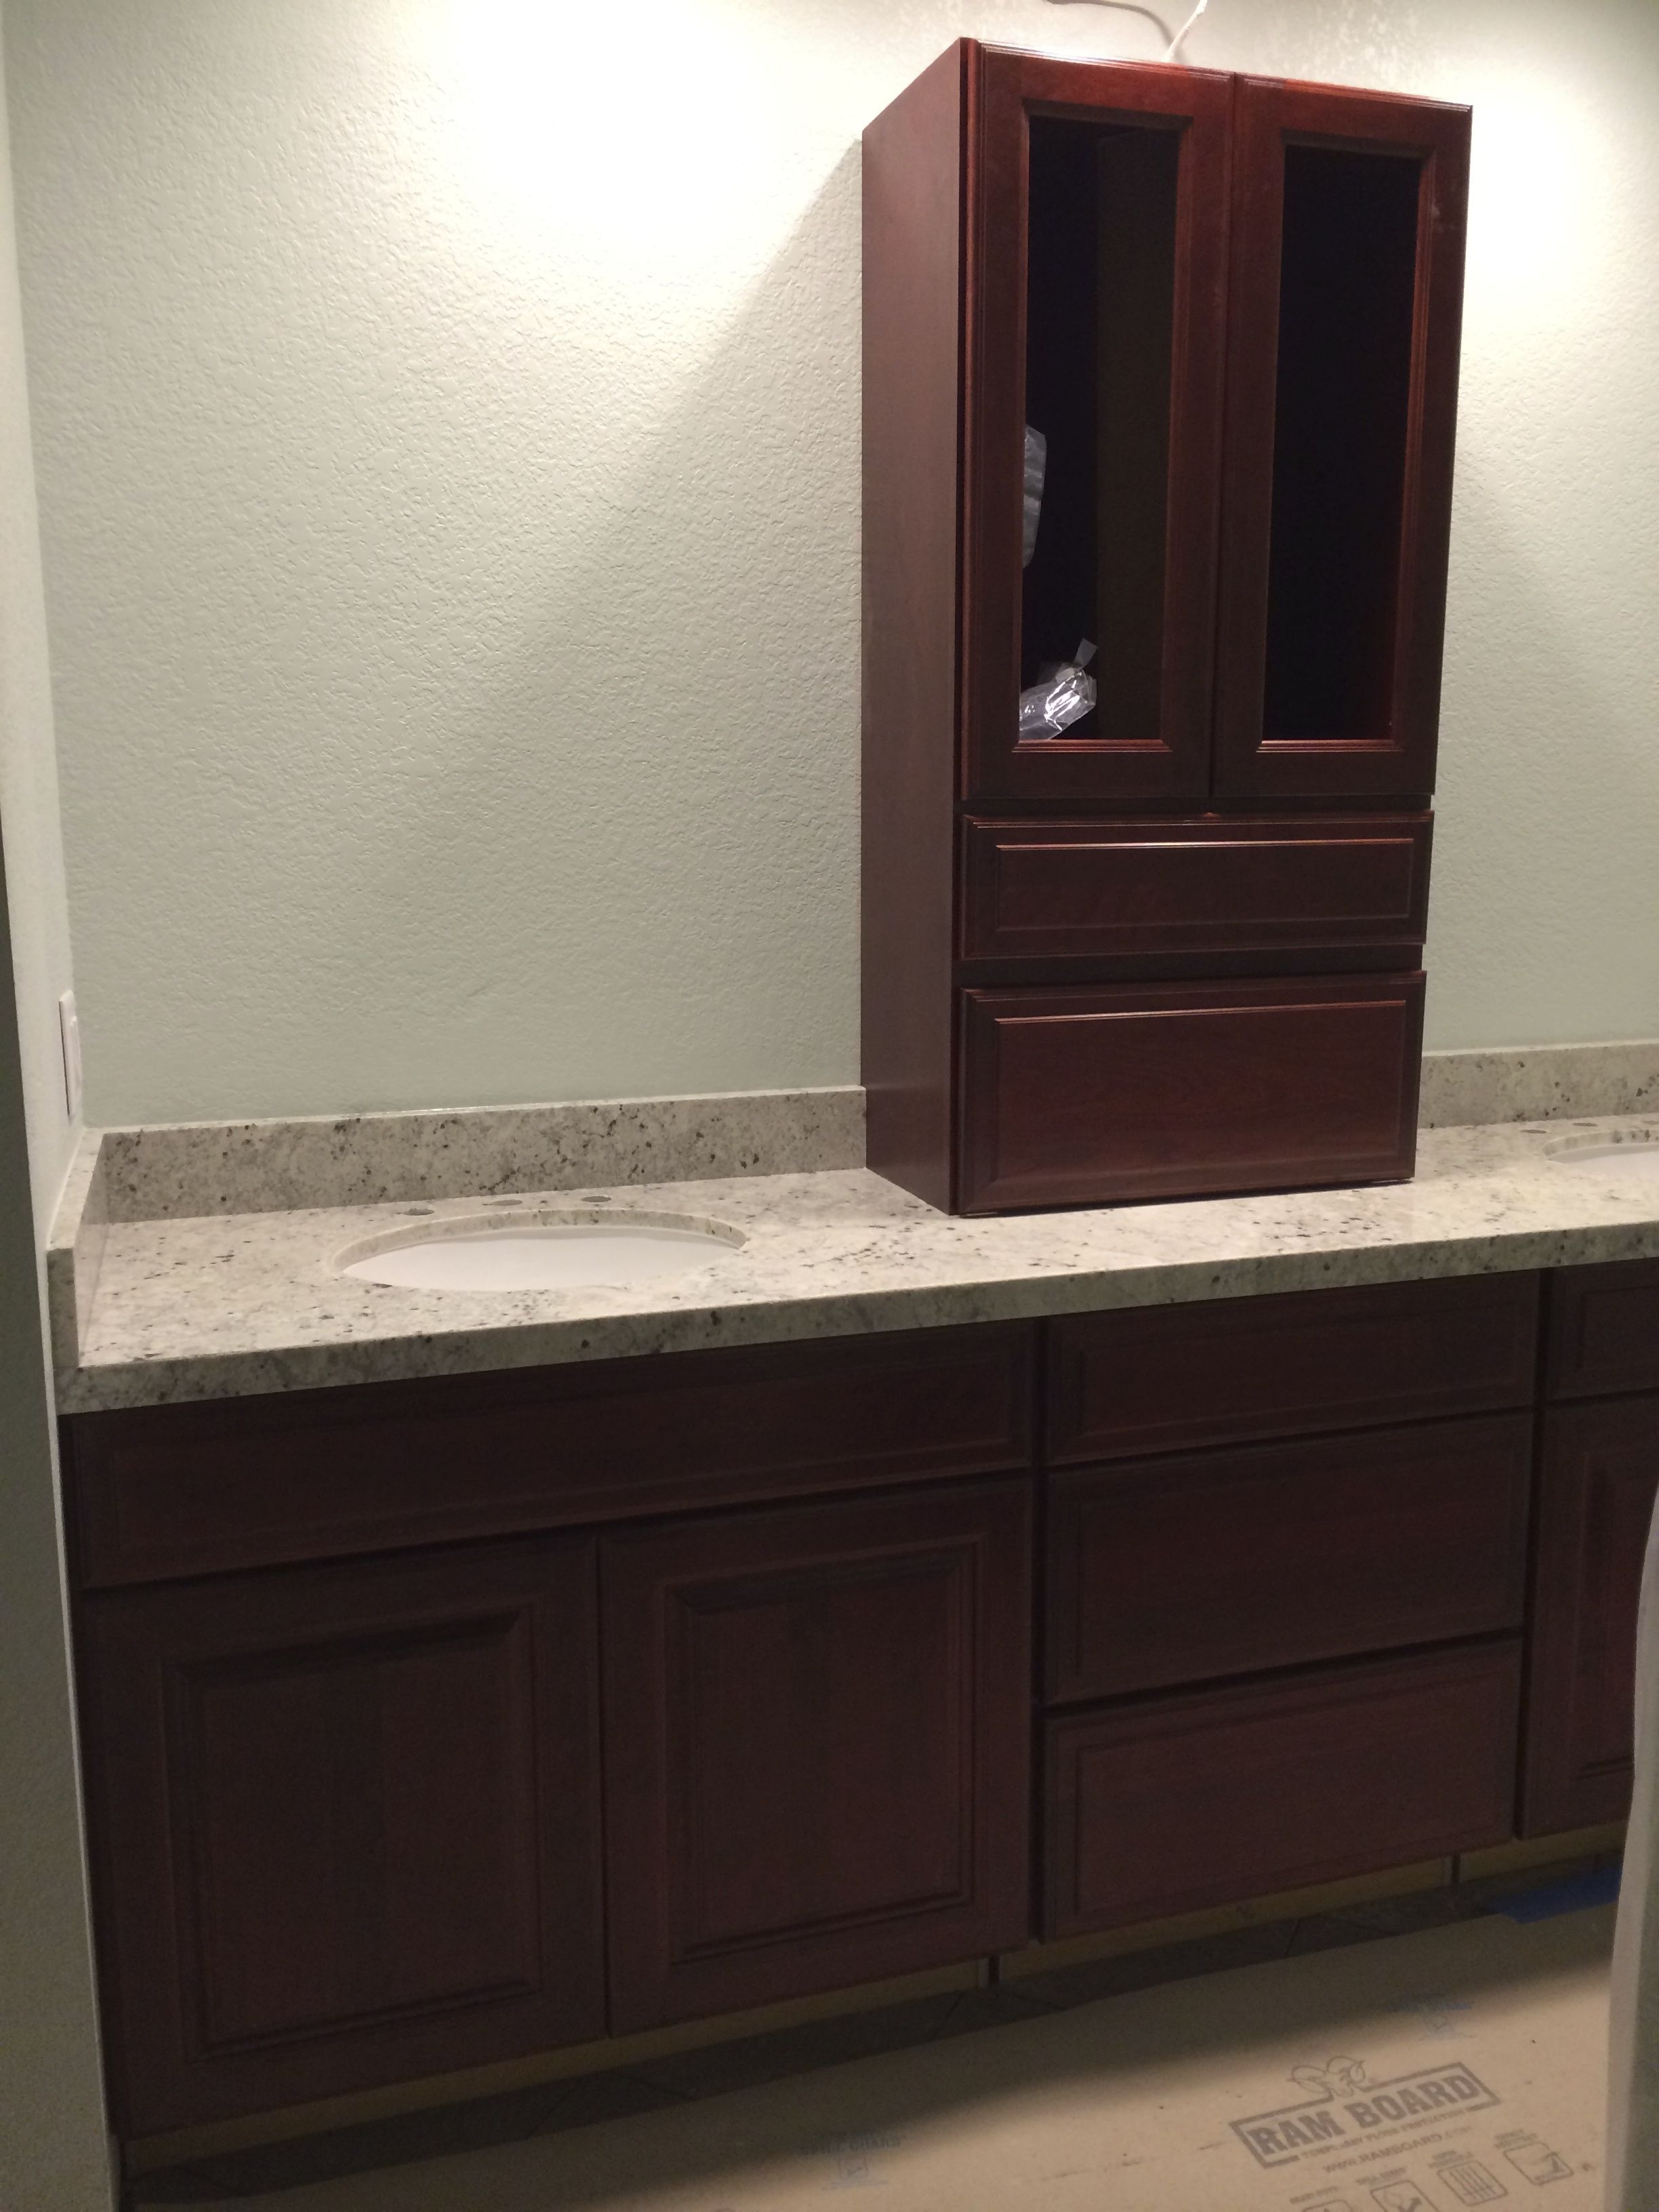 Bathroom Remodeling Timeline day 16 - colonial white granite counter top installationj.e.